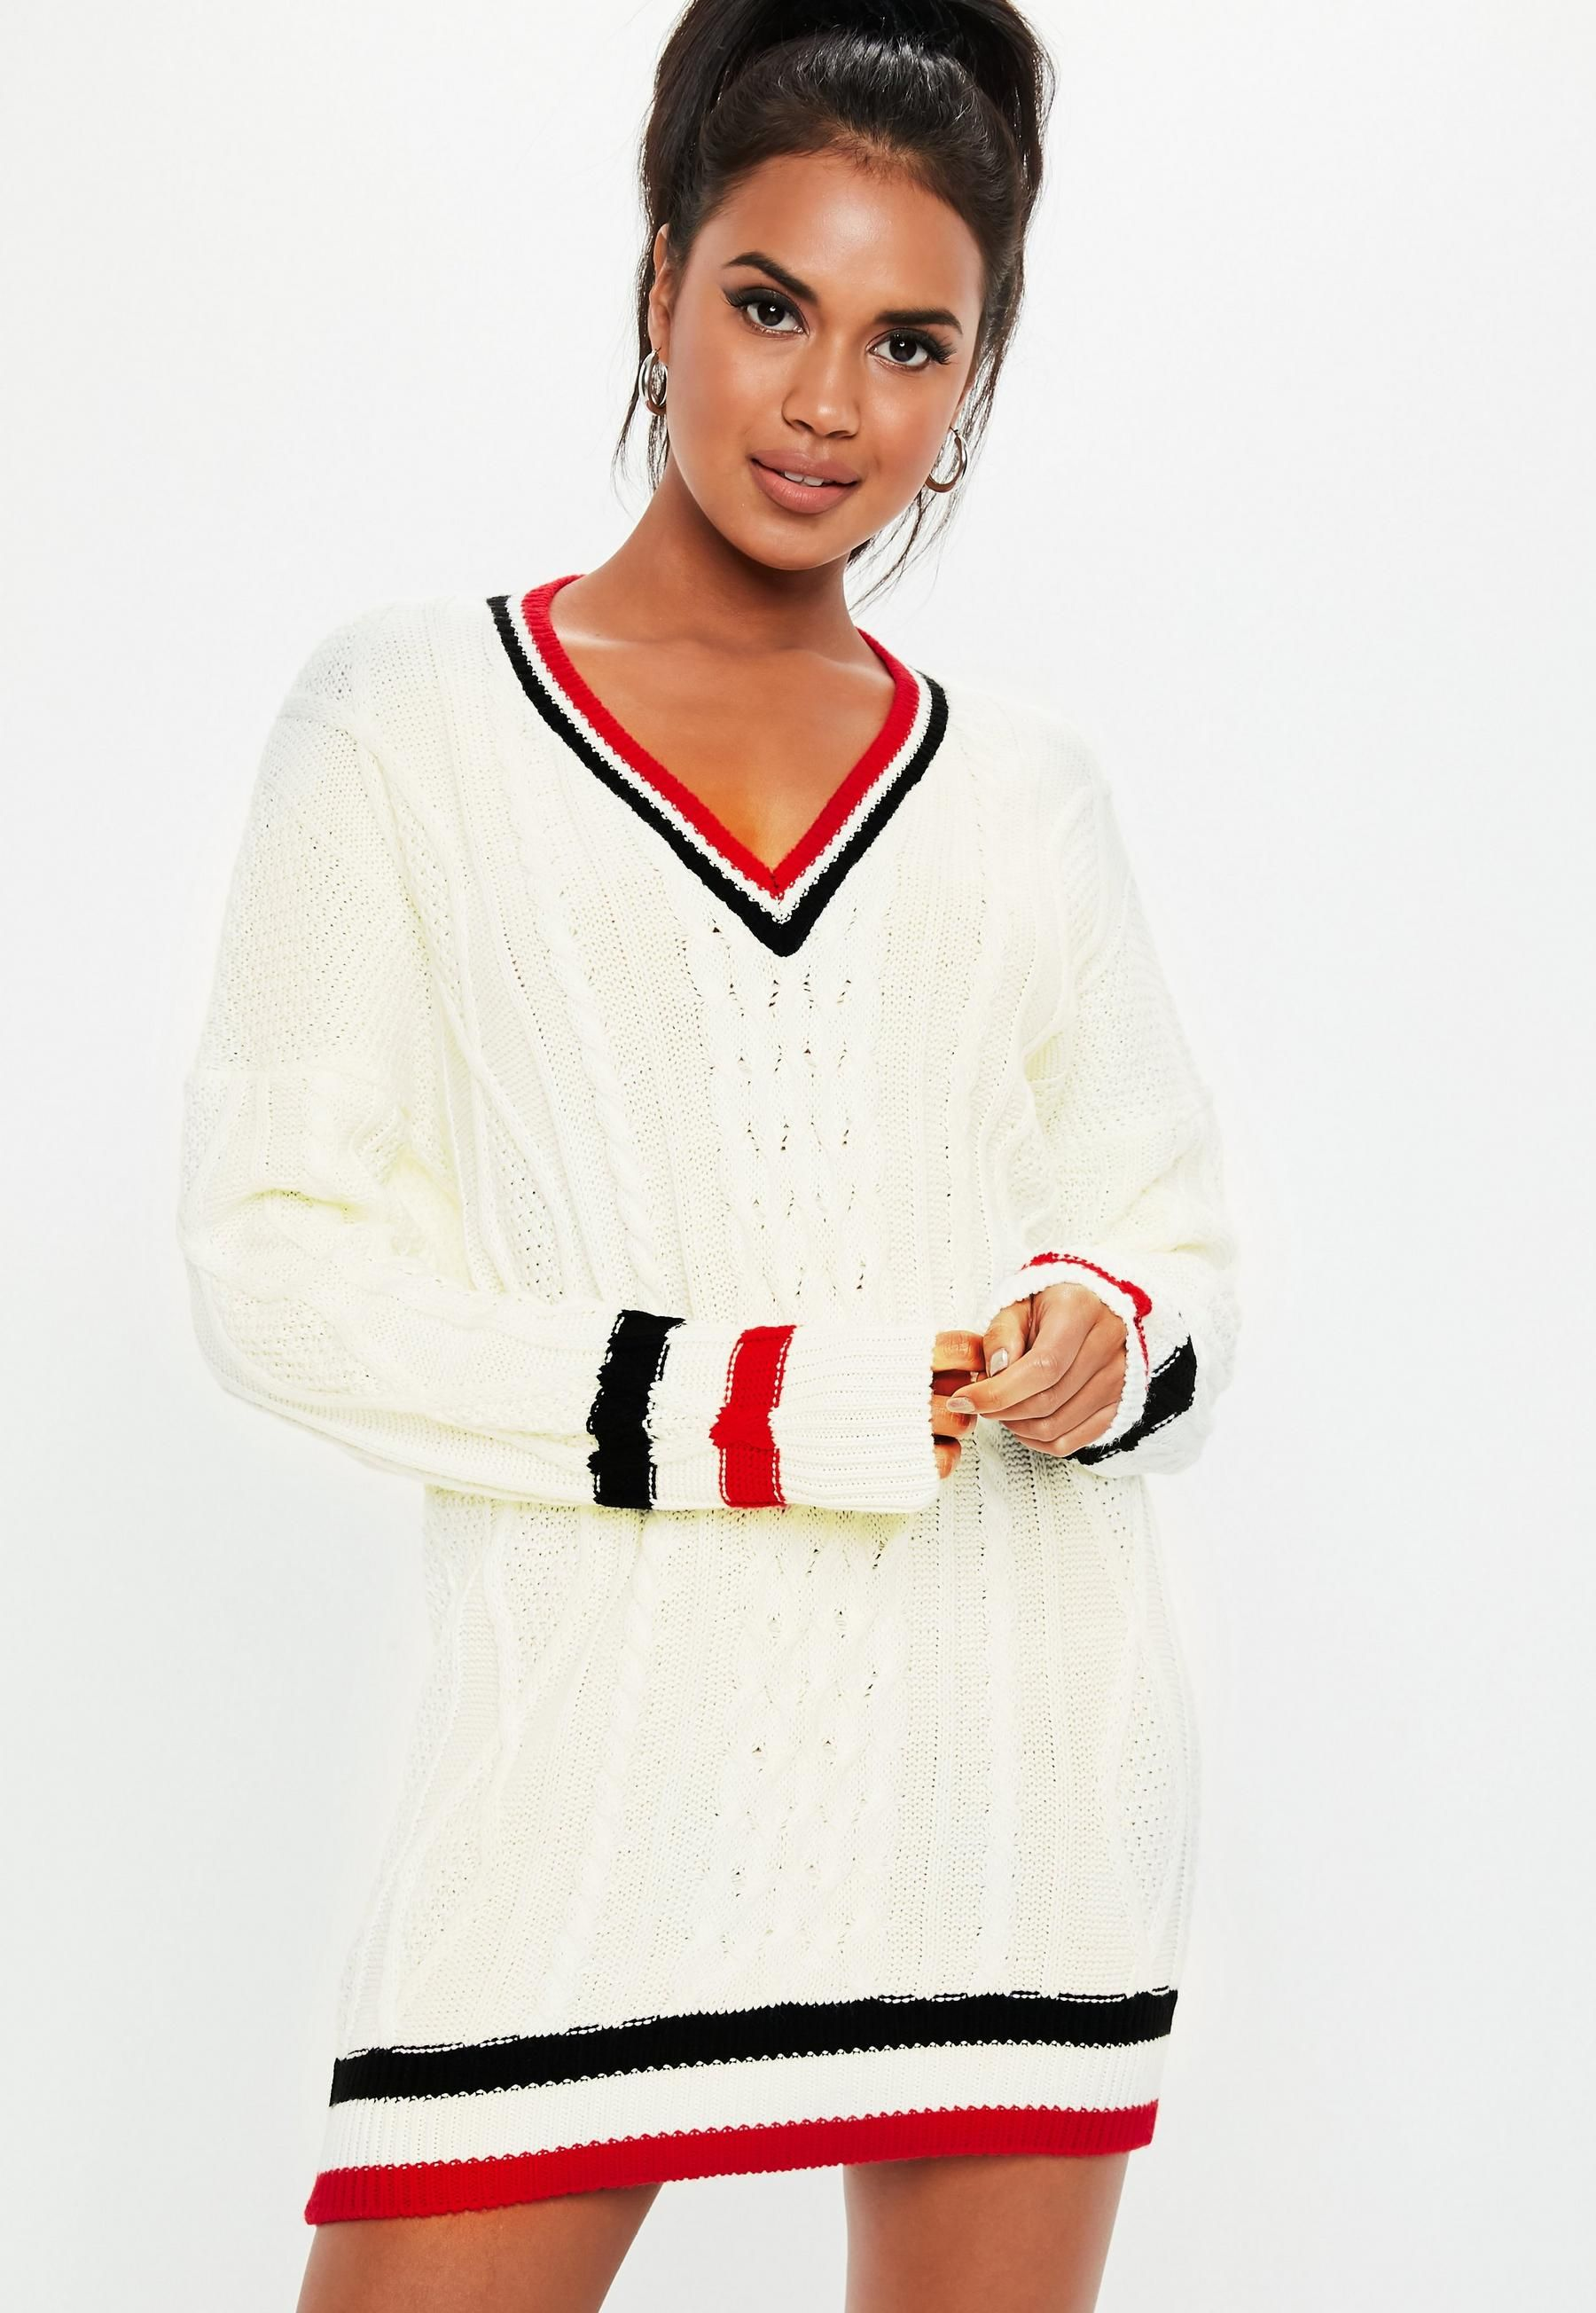 8ee146011fc496 Missguided Cream V Neck Cable Knit Sweater Dress in 2019 ...